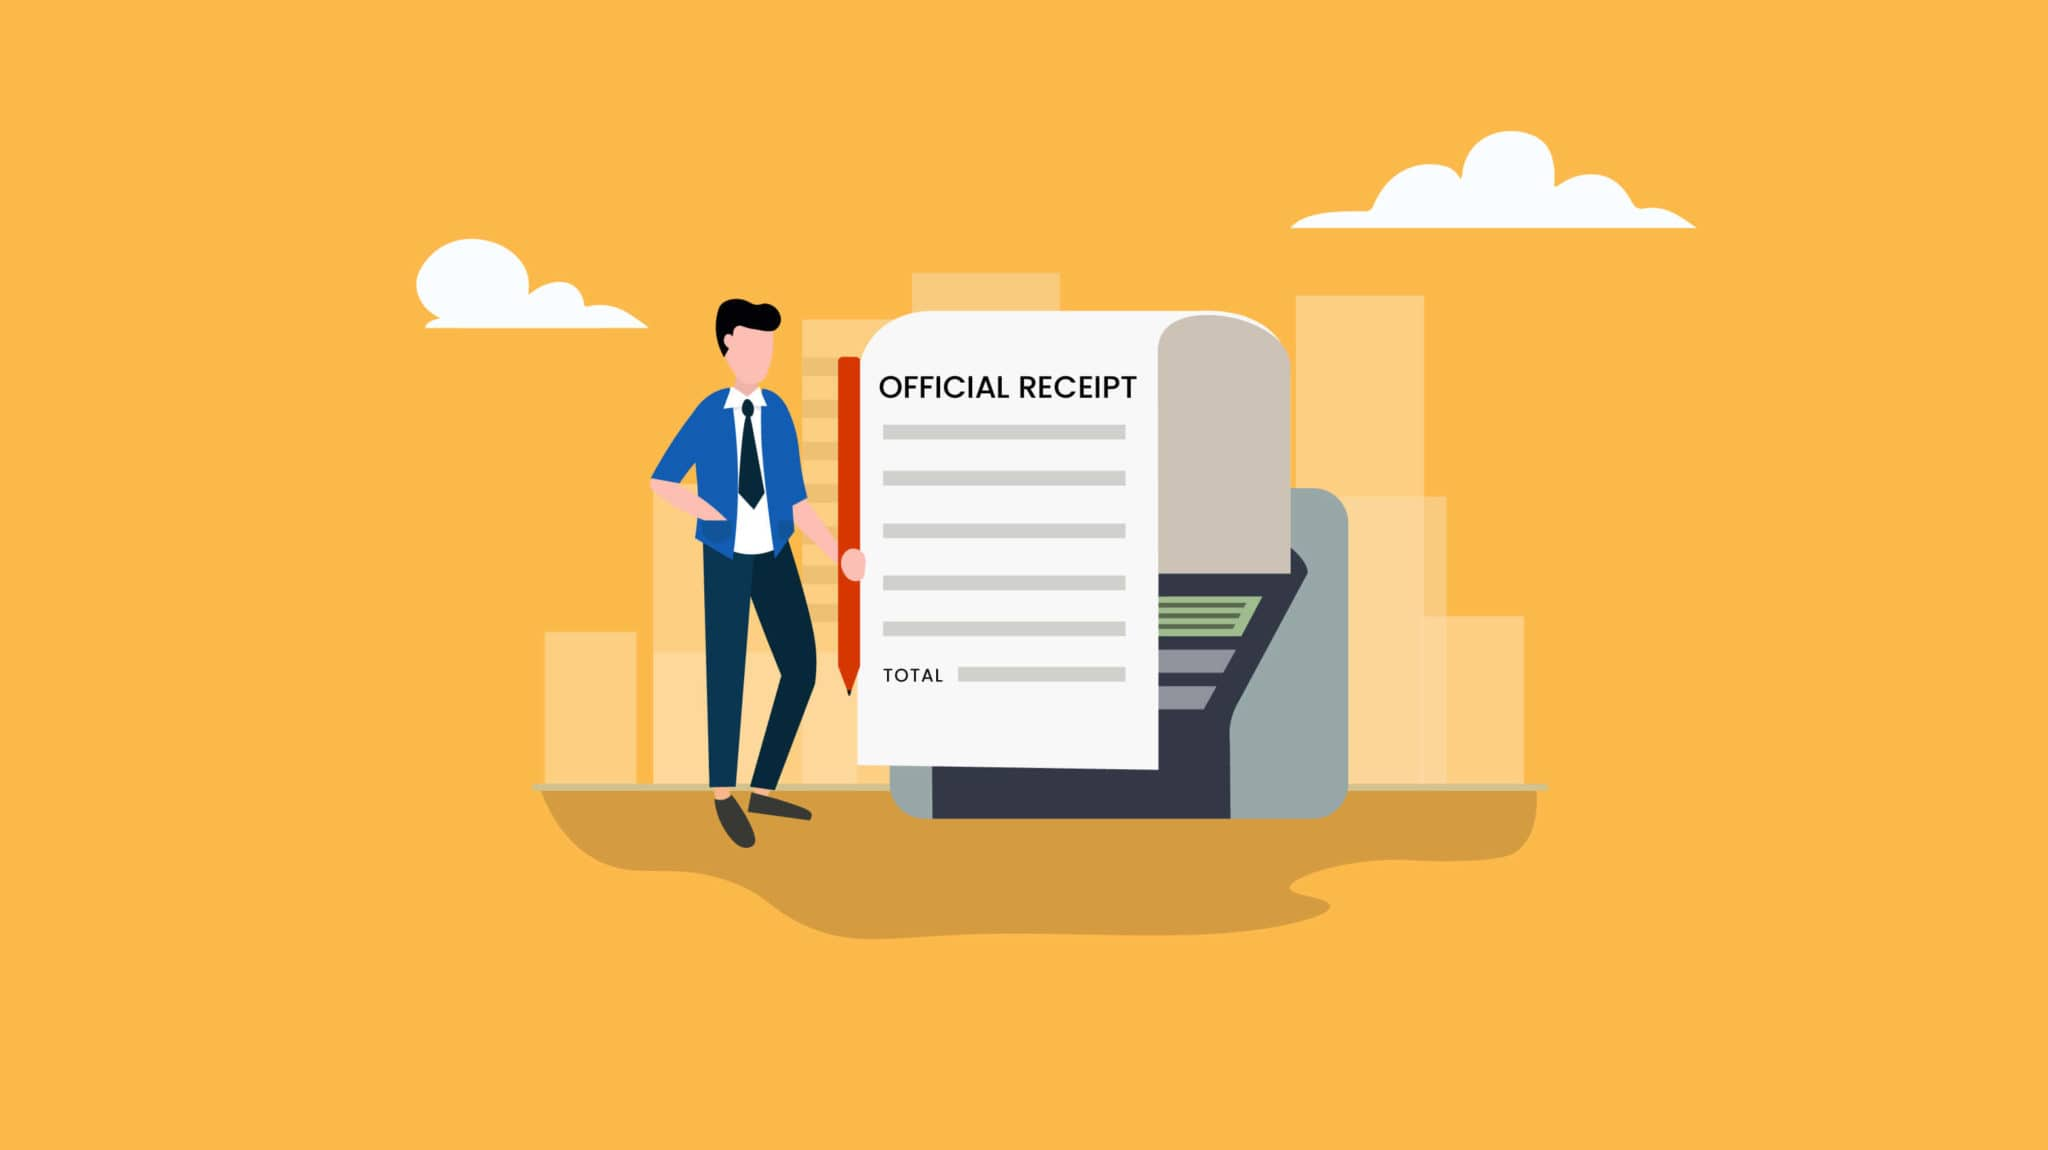 UPDATED 2021 – Official Receipts and Tax Compliance for Businesses in the Philippines